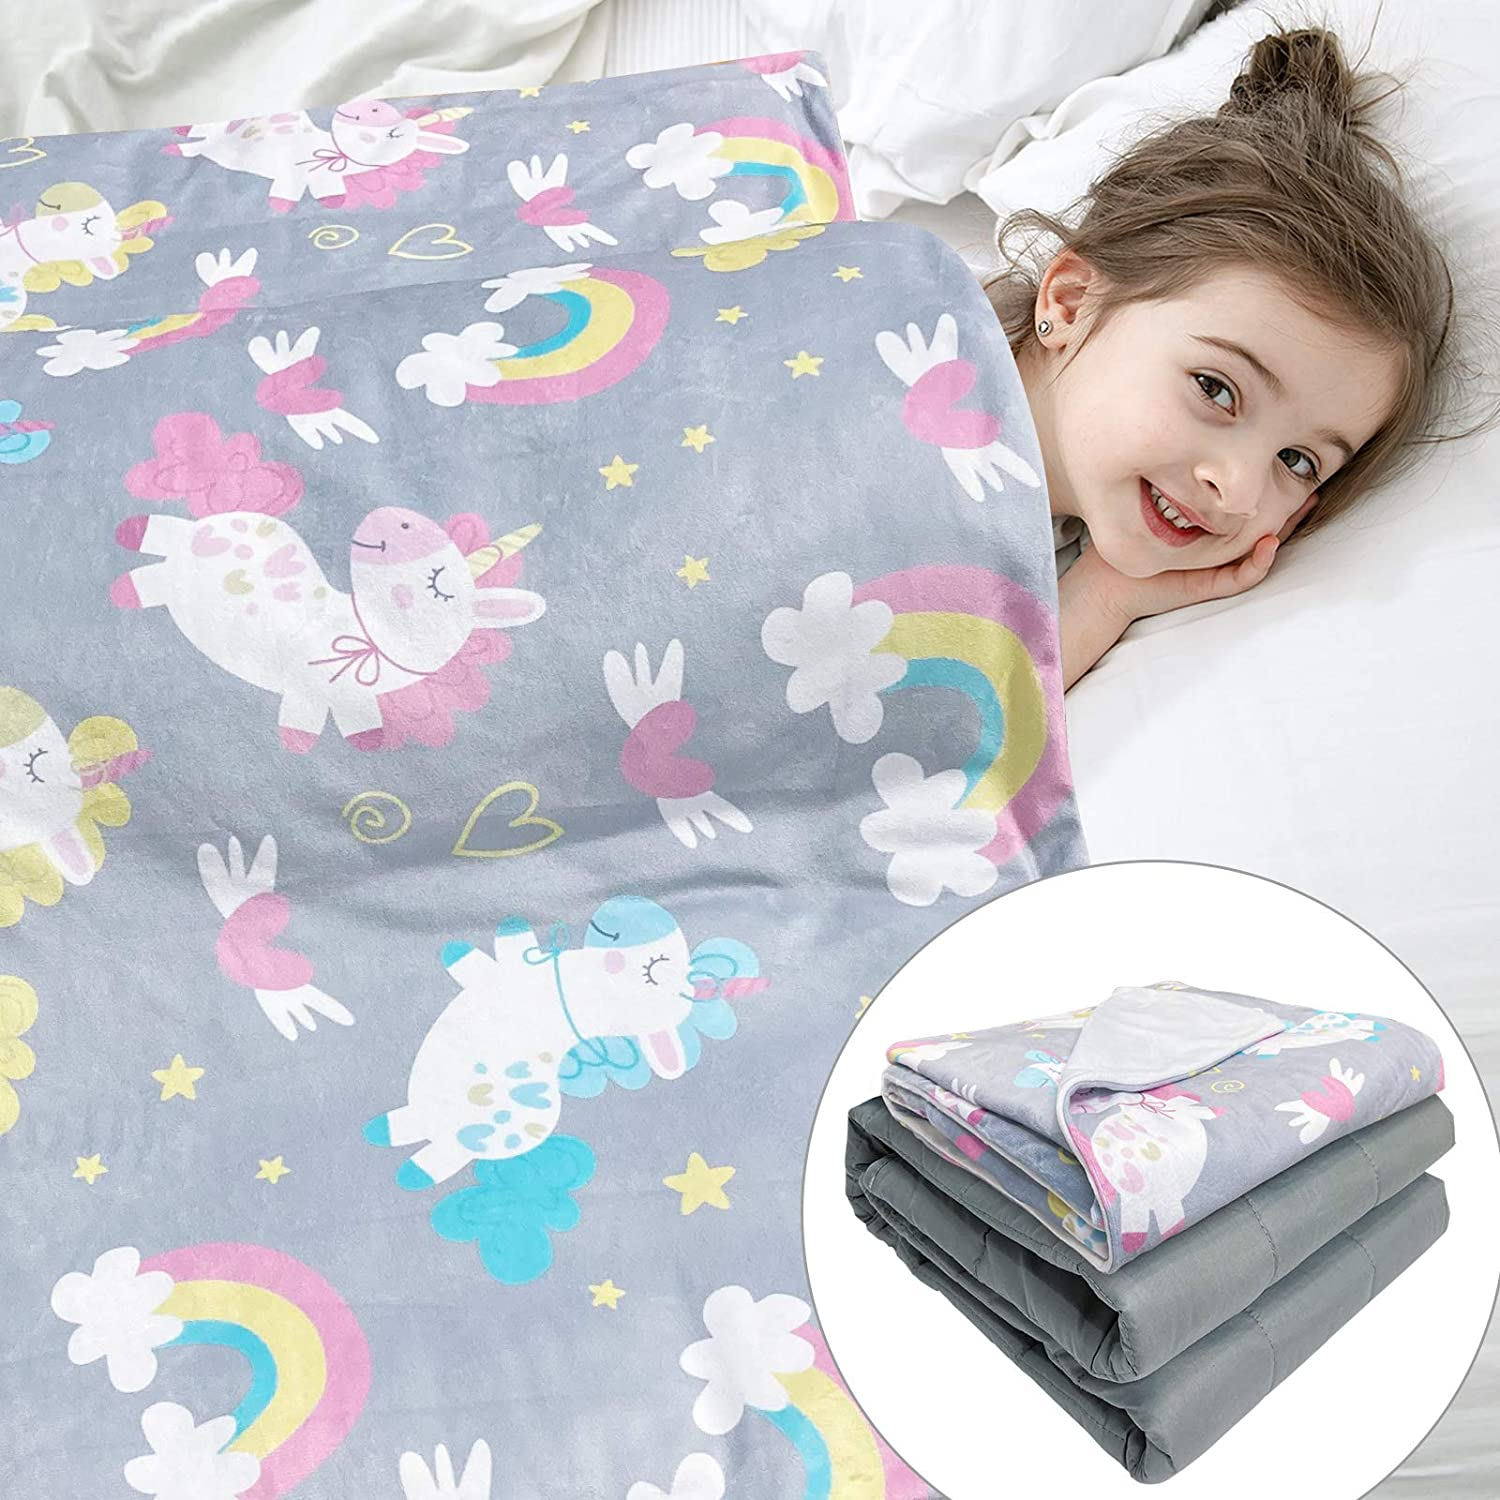 Solfres Kids Weighted Blanket 7lbs 41 Dedication Superlatite Cartoo Gray 60 inches x